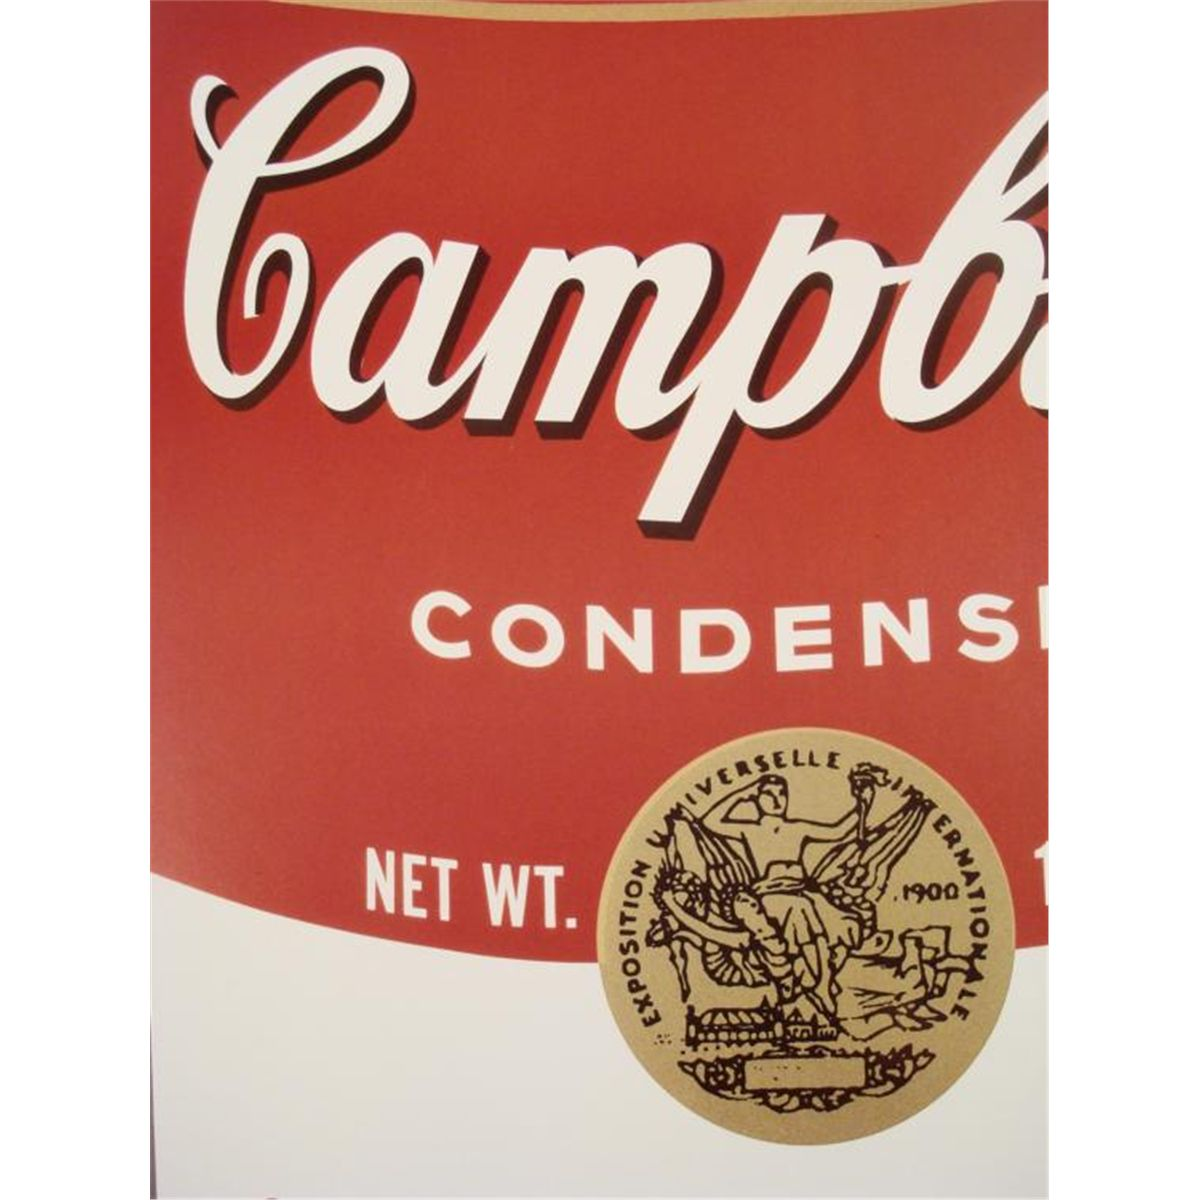 campbell soup The campbell soup company, also known as just campbell's, is an american producer of canned soups and related products that are sold in 120 countries around the worldit is headquartered in camden, new jersey campbell's divides itself into three divisions: the simple meals division, which consists largely of soups that are either.